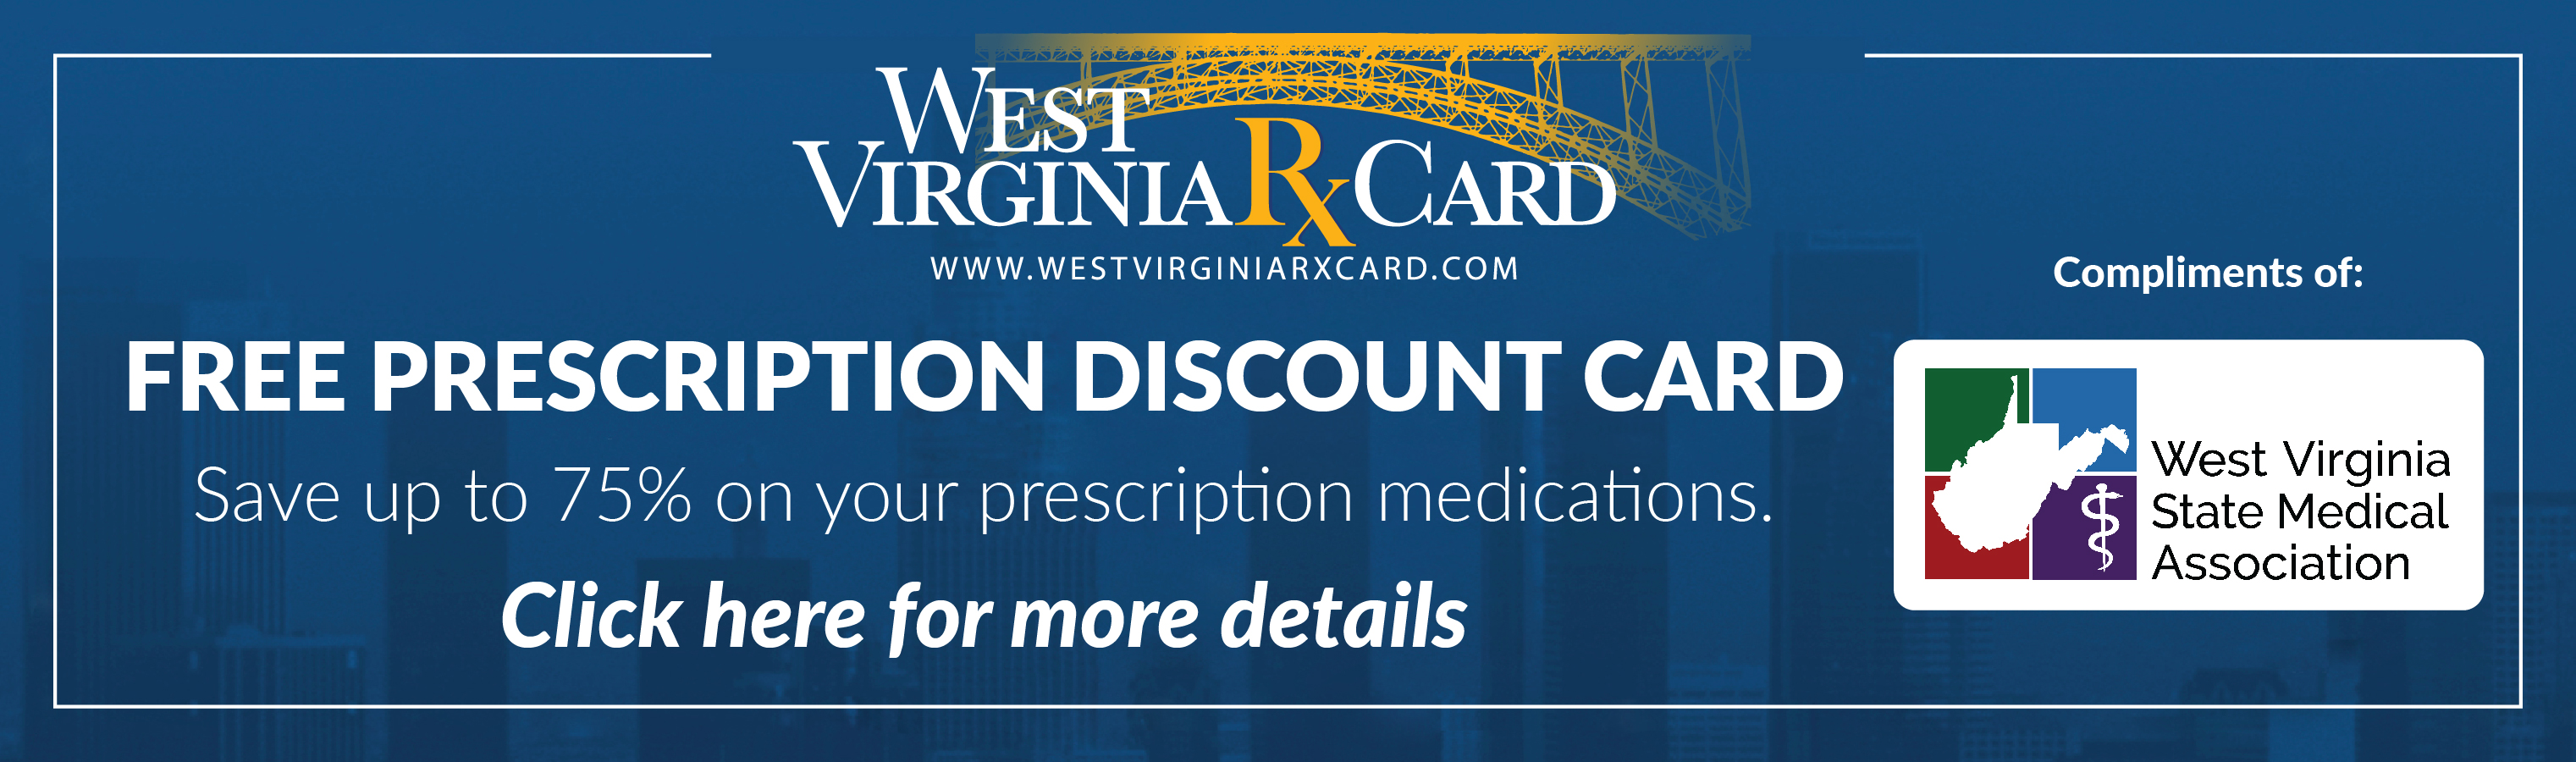 West Virginia State Medical Association- New Web Button-012